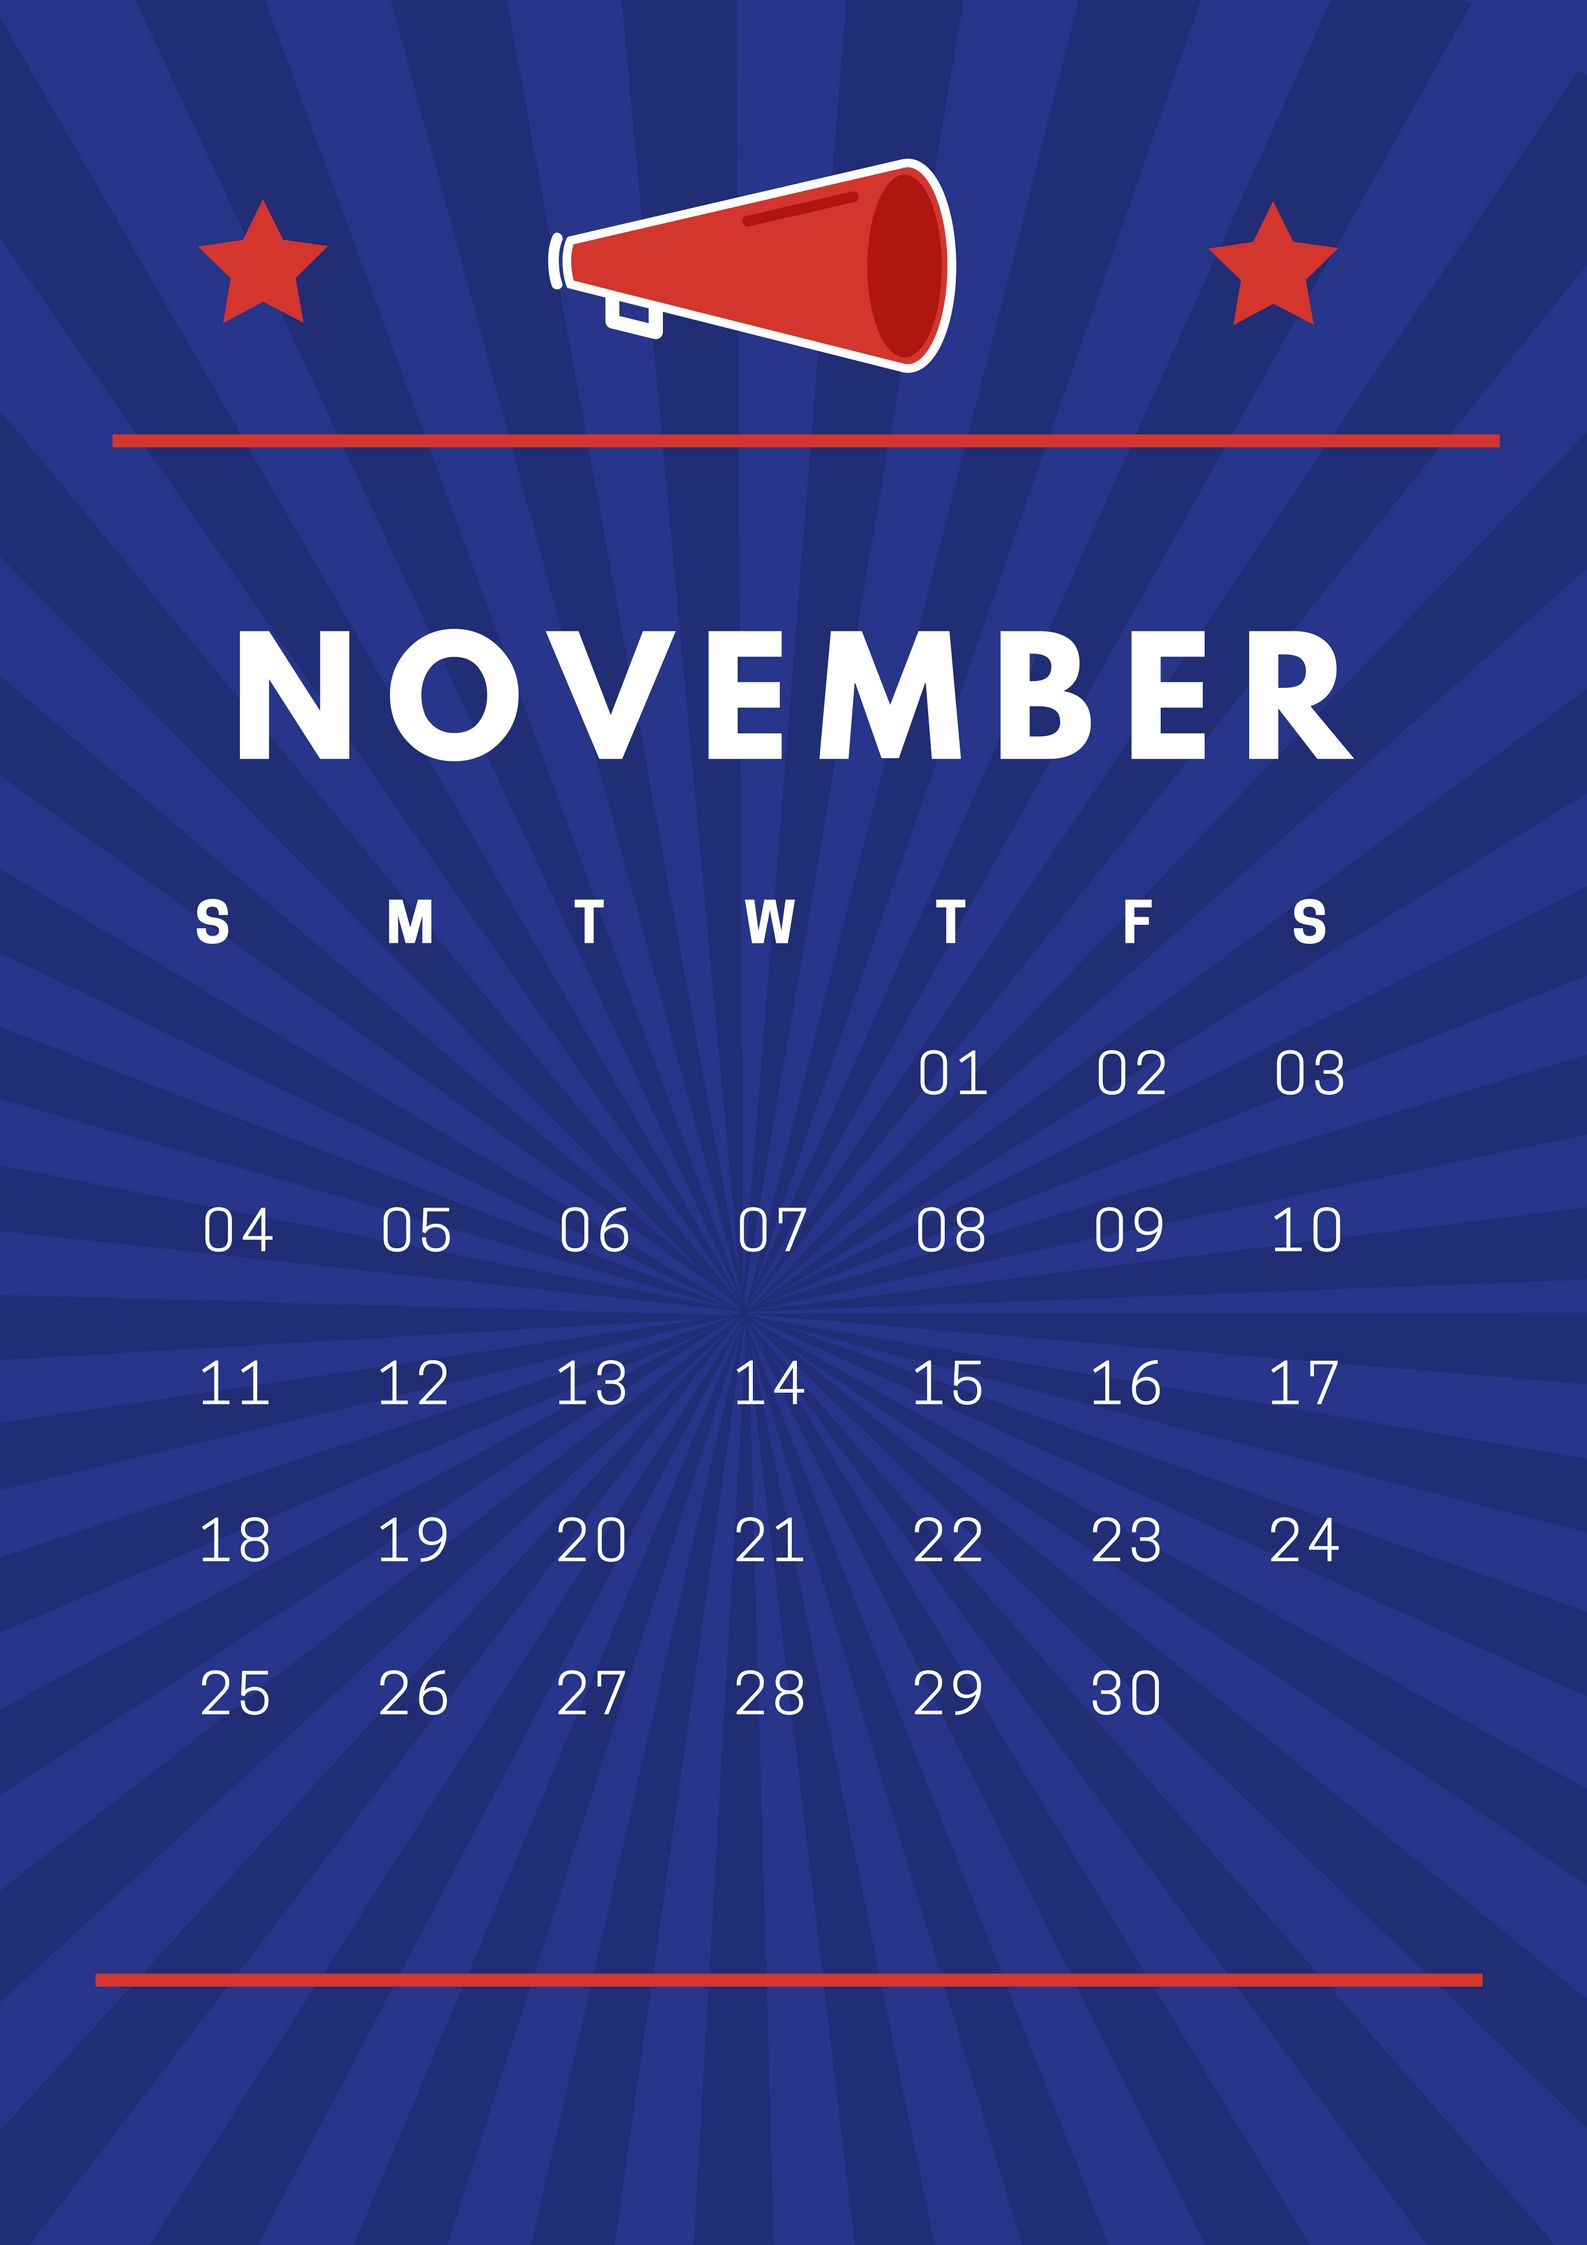 November 2018 iPhone Calendar HD Wallpapers (With images